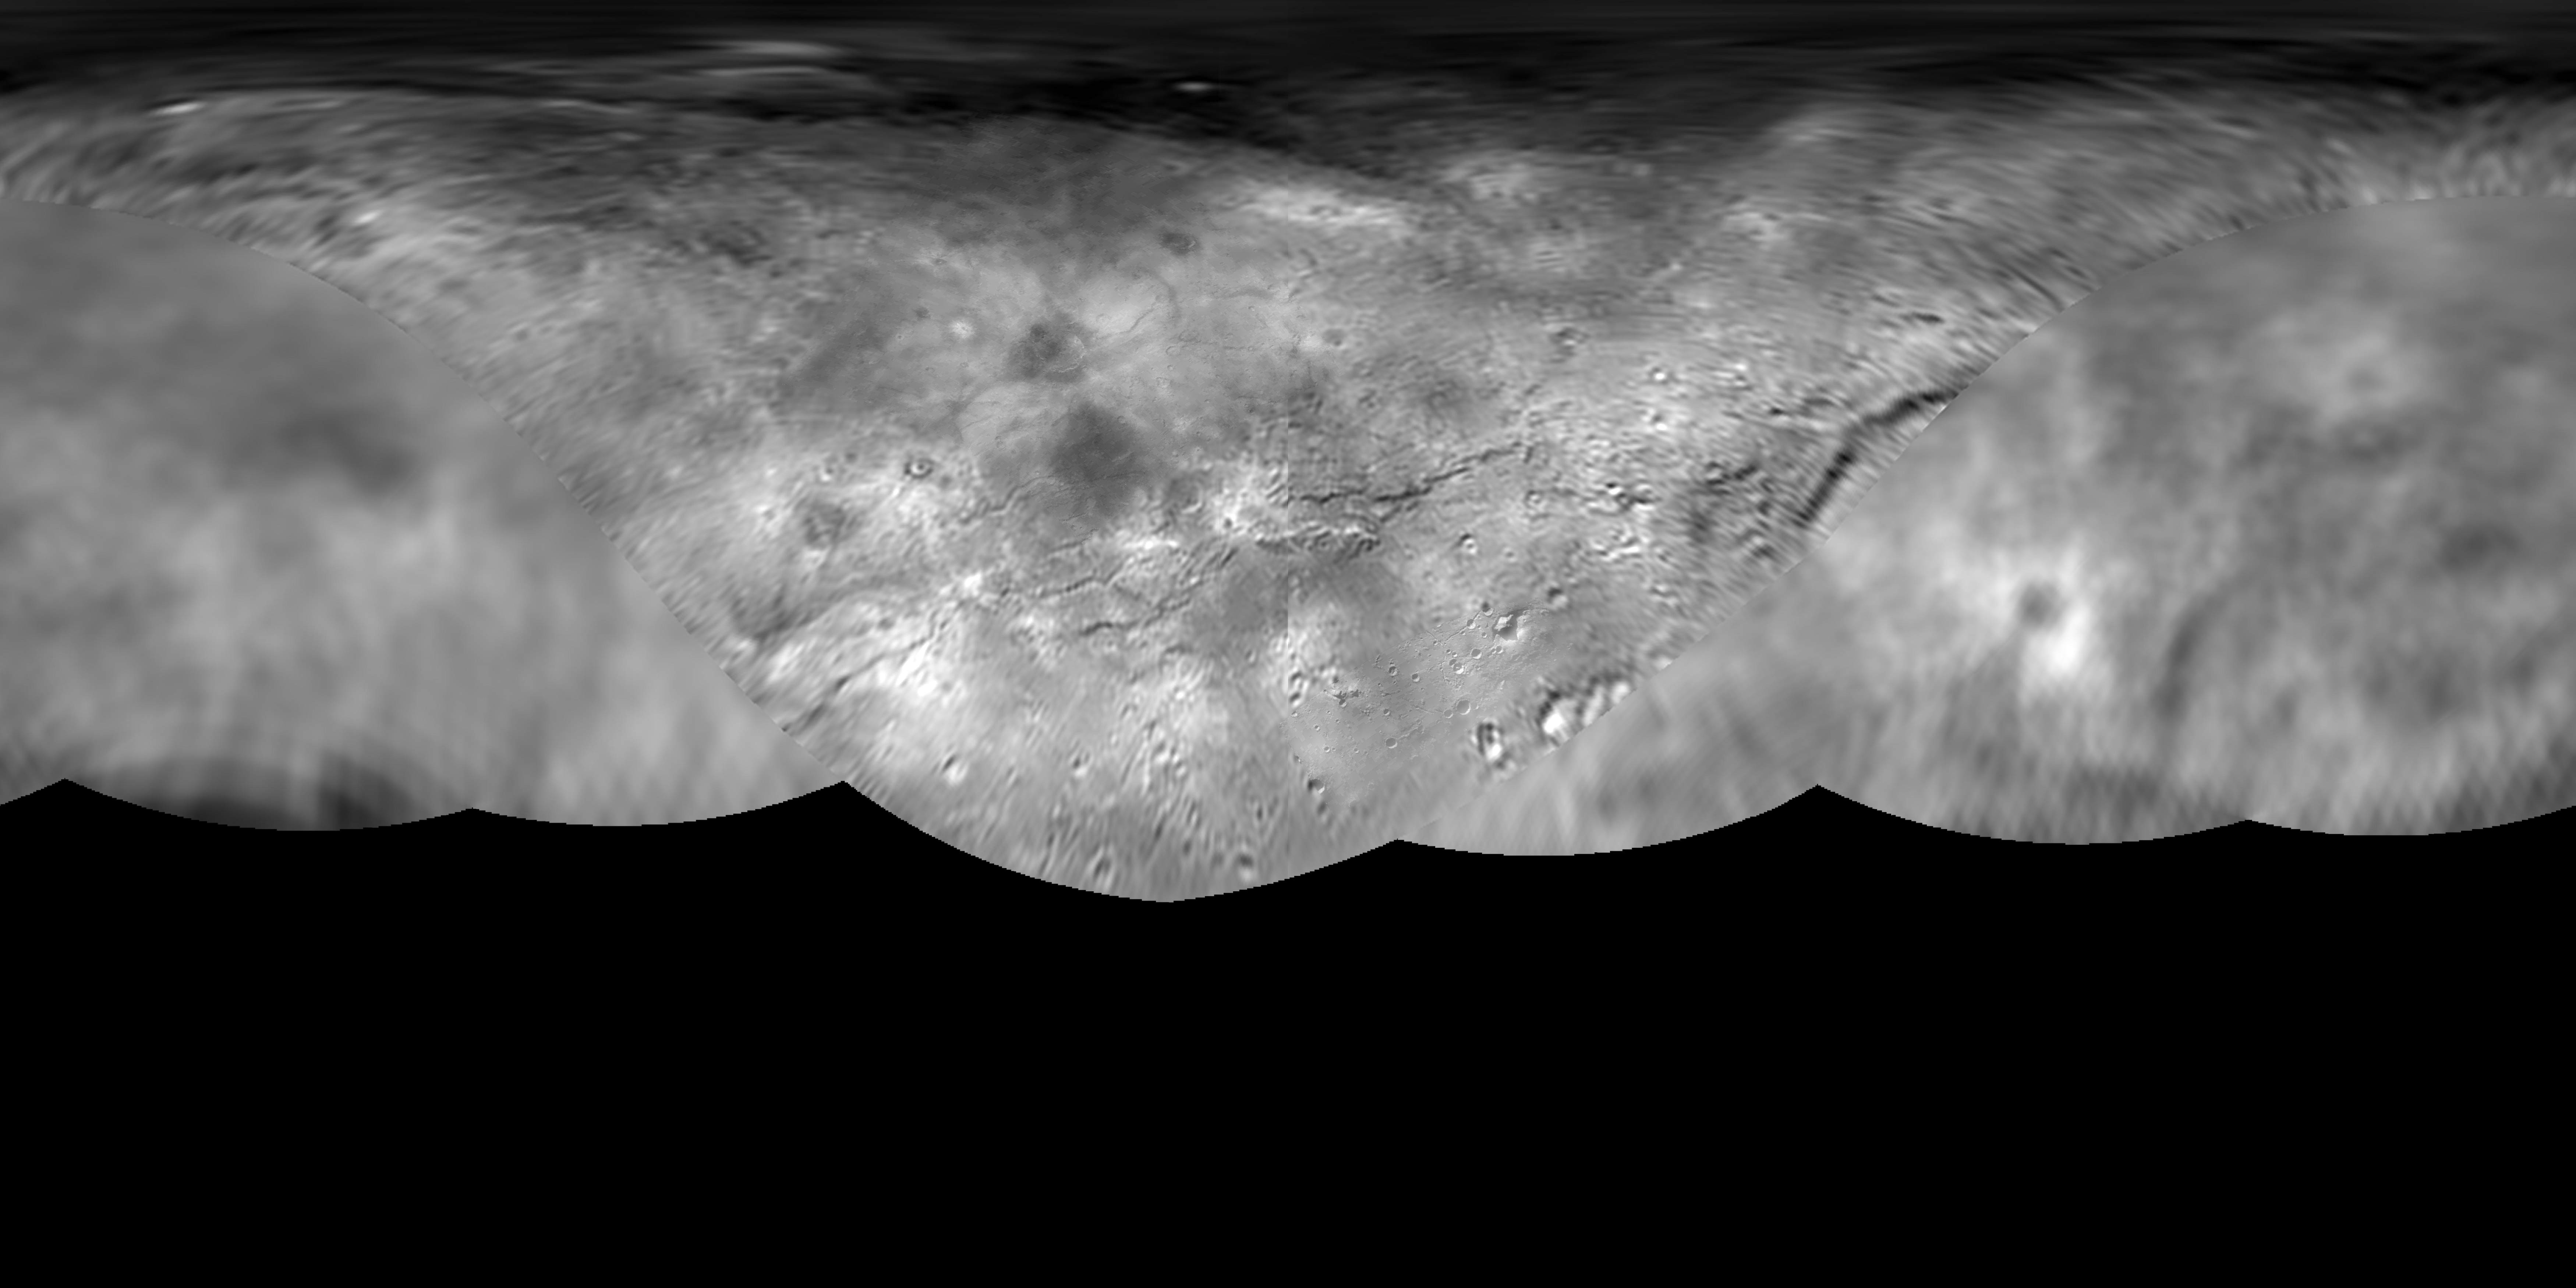 NASA Releases Global Map of Pluto's Moon Charon | Space ... on atmosphere on pluto, illustrations of pluto, journey to pluto, voyager pluto, mission to pluto, who discovered pluto, color of pluto, viva la pluto, god of pluto, google pluto, sun pluto, dwarf planet poor pluto, size of pluto, hydra moon of pluto, temperature on pluto, space pluto, symbol of pluto, everything about pluto, information about pluto, the word pluto,